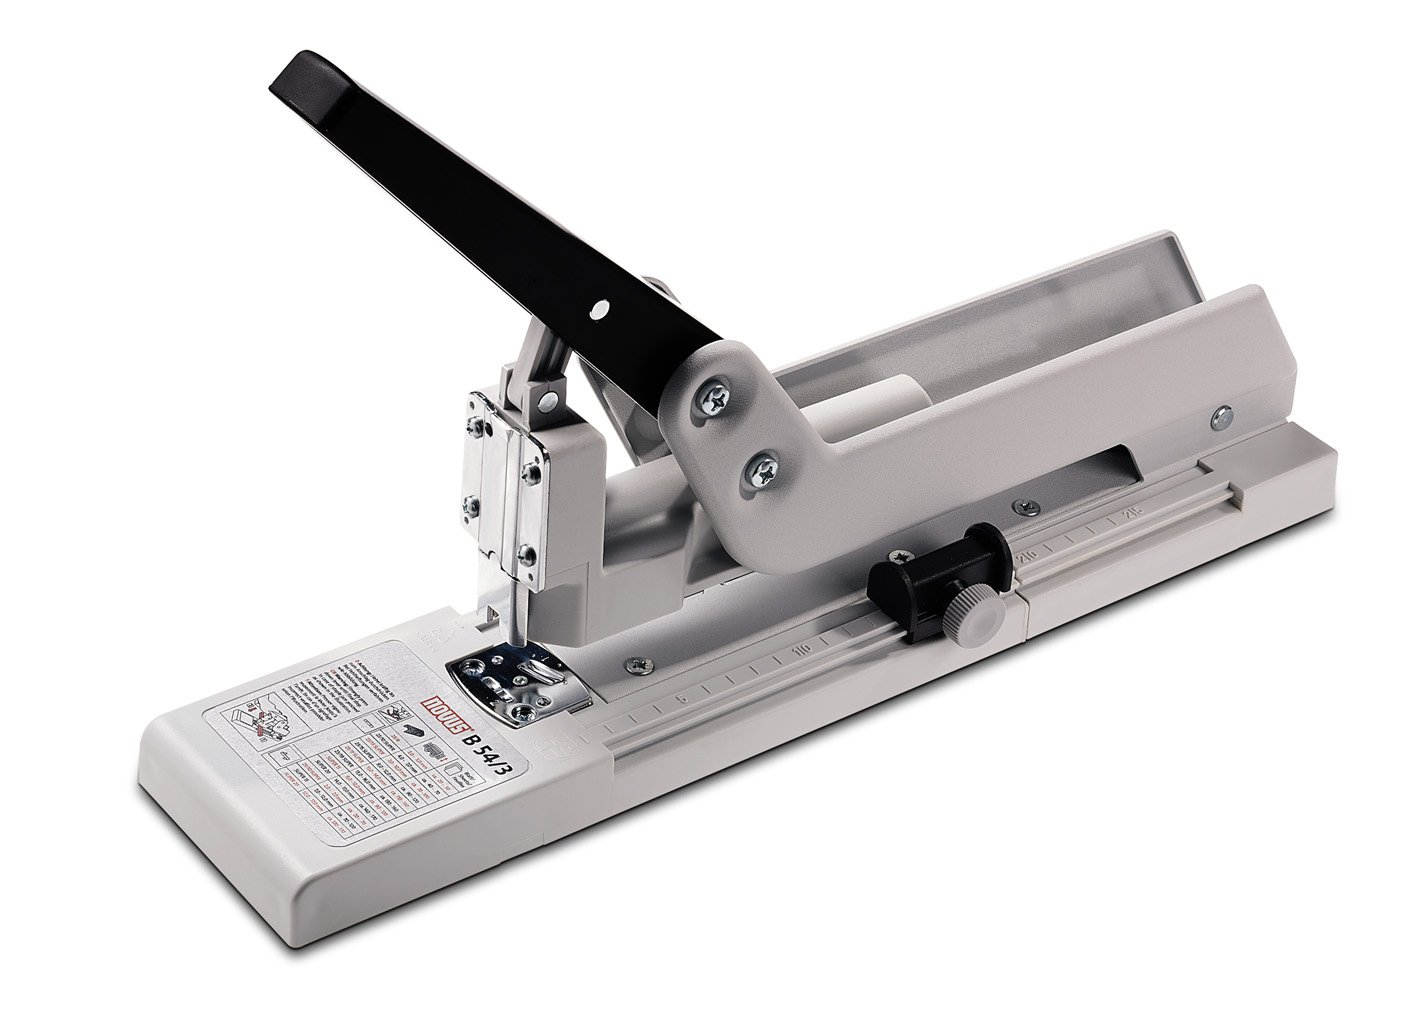 Novus 023-0038 B54 Heavy Duty Long Arm Stapler, 20 - 170 Sheet Capacity, 9-7/8'' Throat Depth for Greater Reach Across Documents and Binding Booklets, Accepts Up to 20 mm Staples